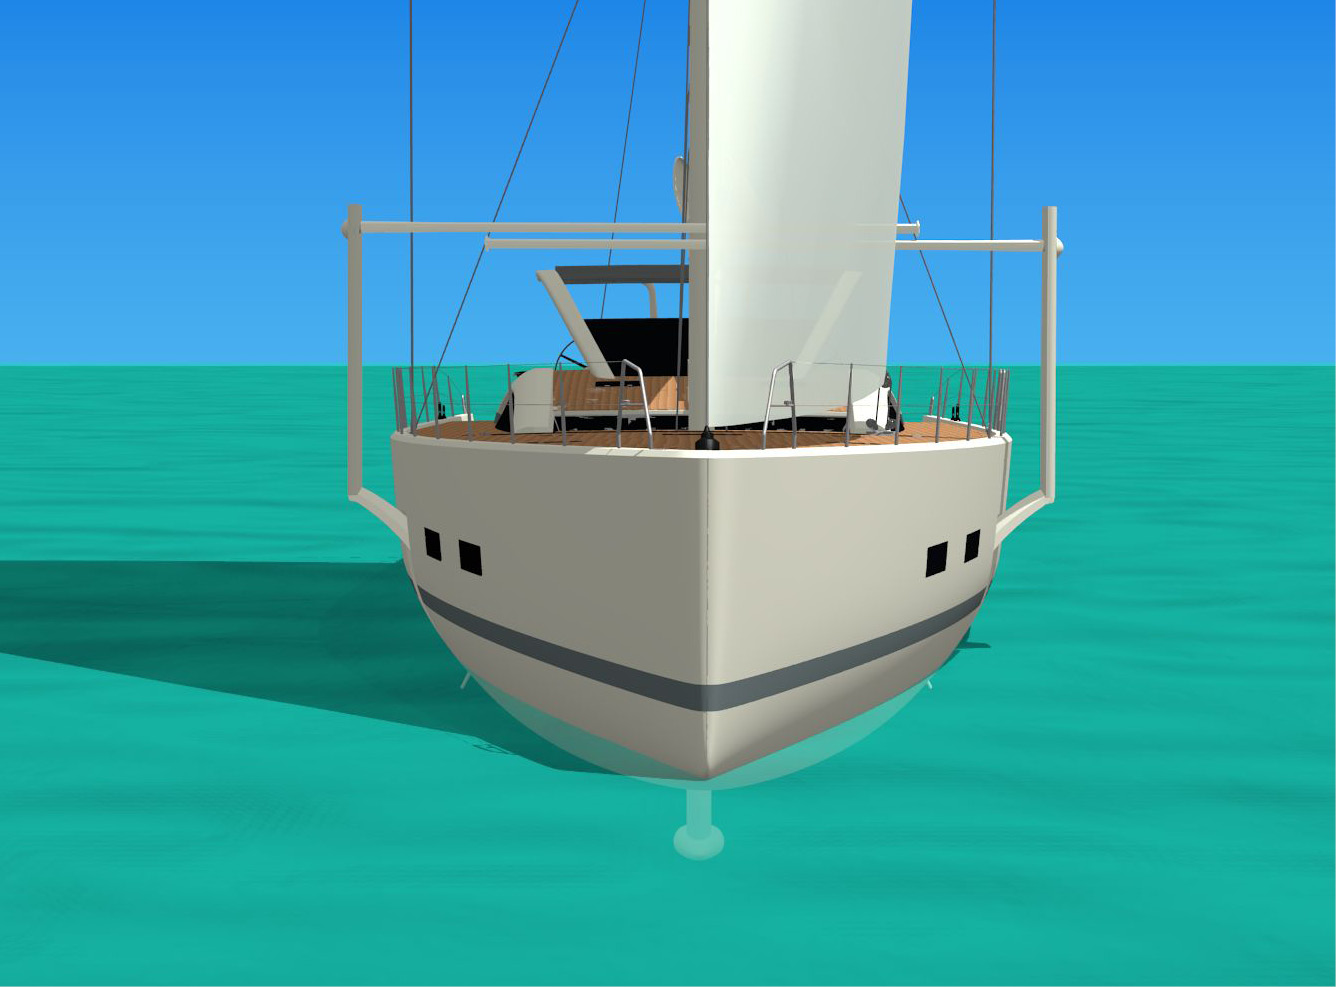 In aft and broad winds you will be able to remove both SBS wings from the water keeping them up or in horizontal position. Wet surfaces and drags will be kept to a minimum. If the skipper of a semi displacement sailboat hull wants to get into a planing mode, using a touch of a finger on the control panel allows the lower leeward wing to increase lift and stability. By reducing displacement and lifting the midship/bow sections, the vessel will increase speed, getting into the planing mode.